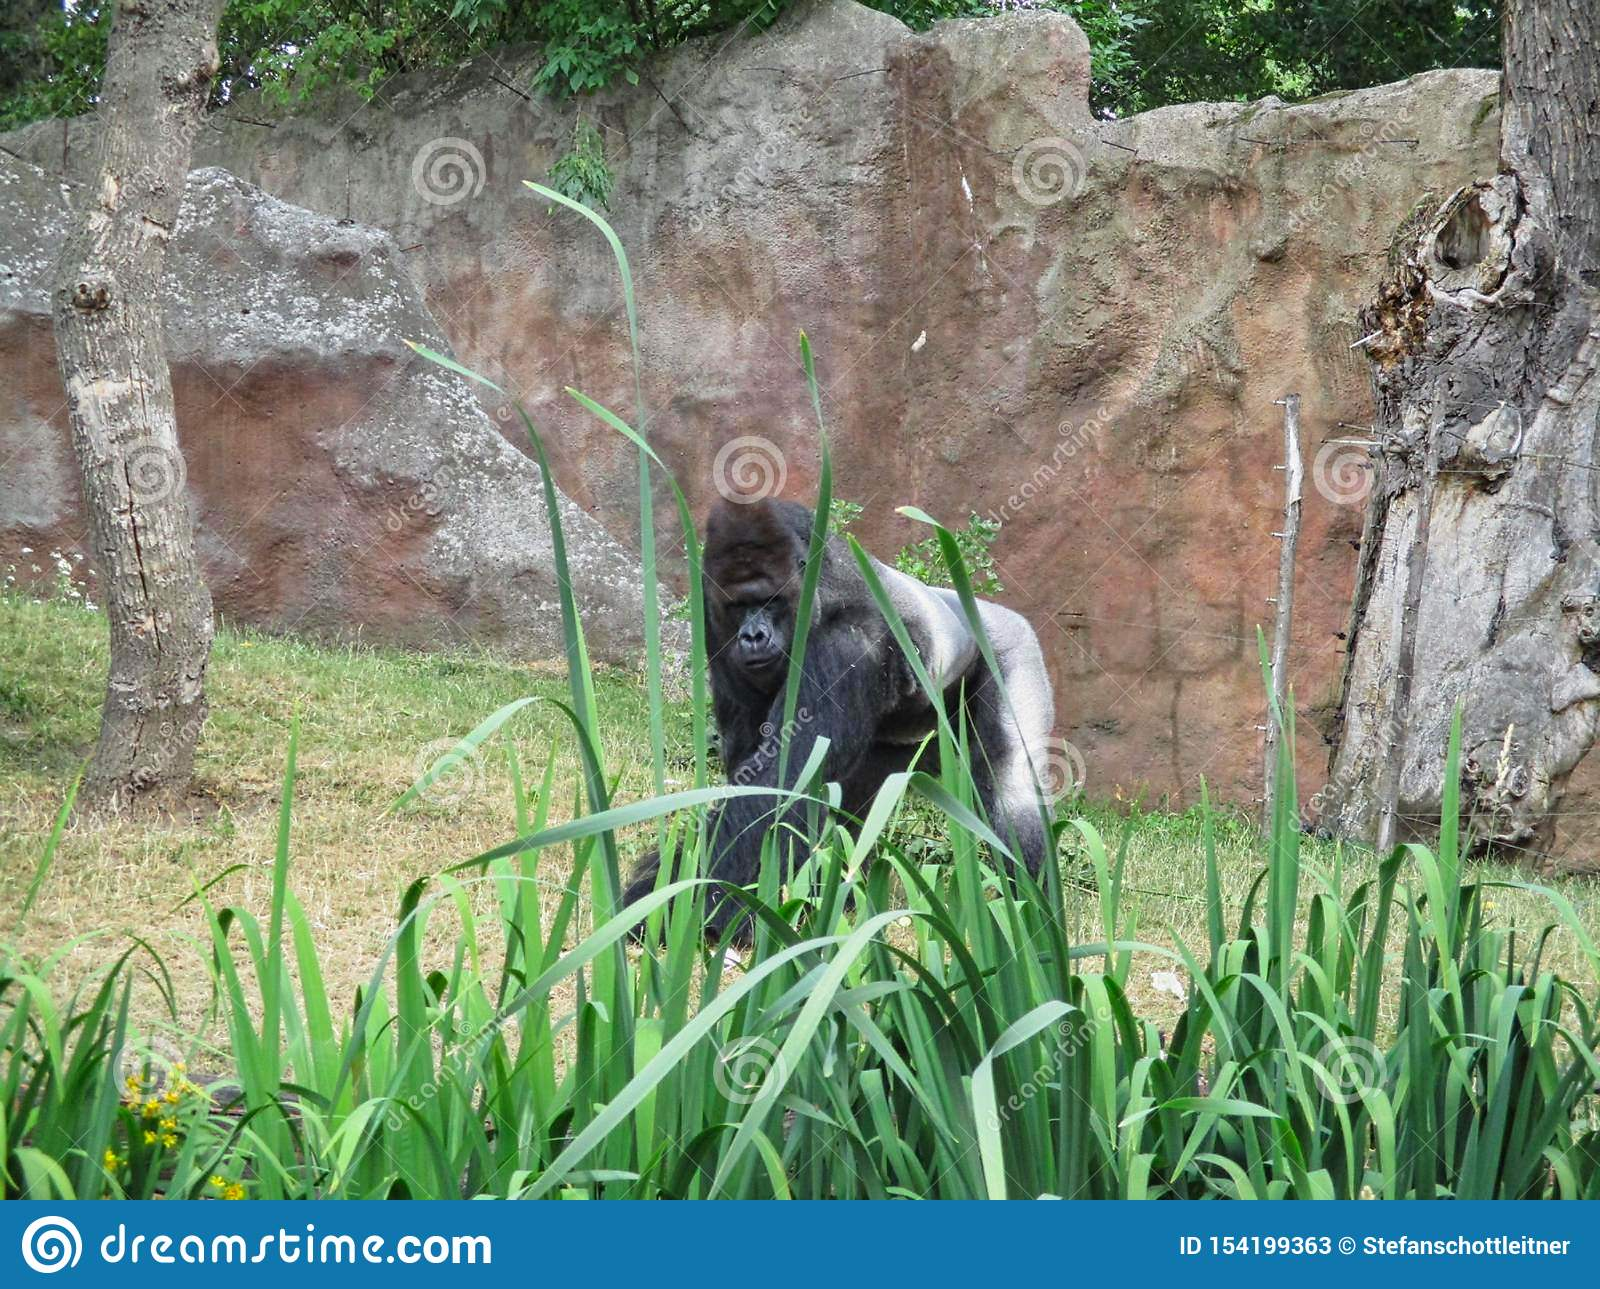 a gorilla in the zoo